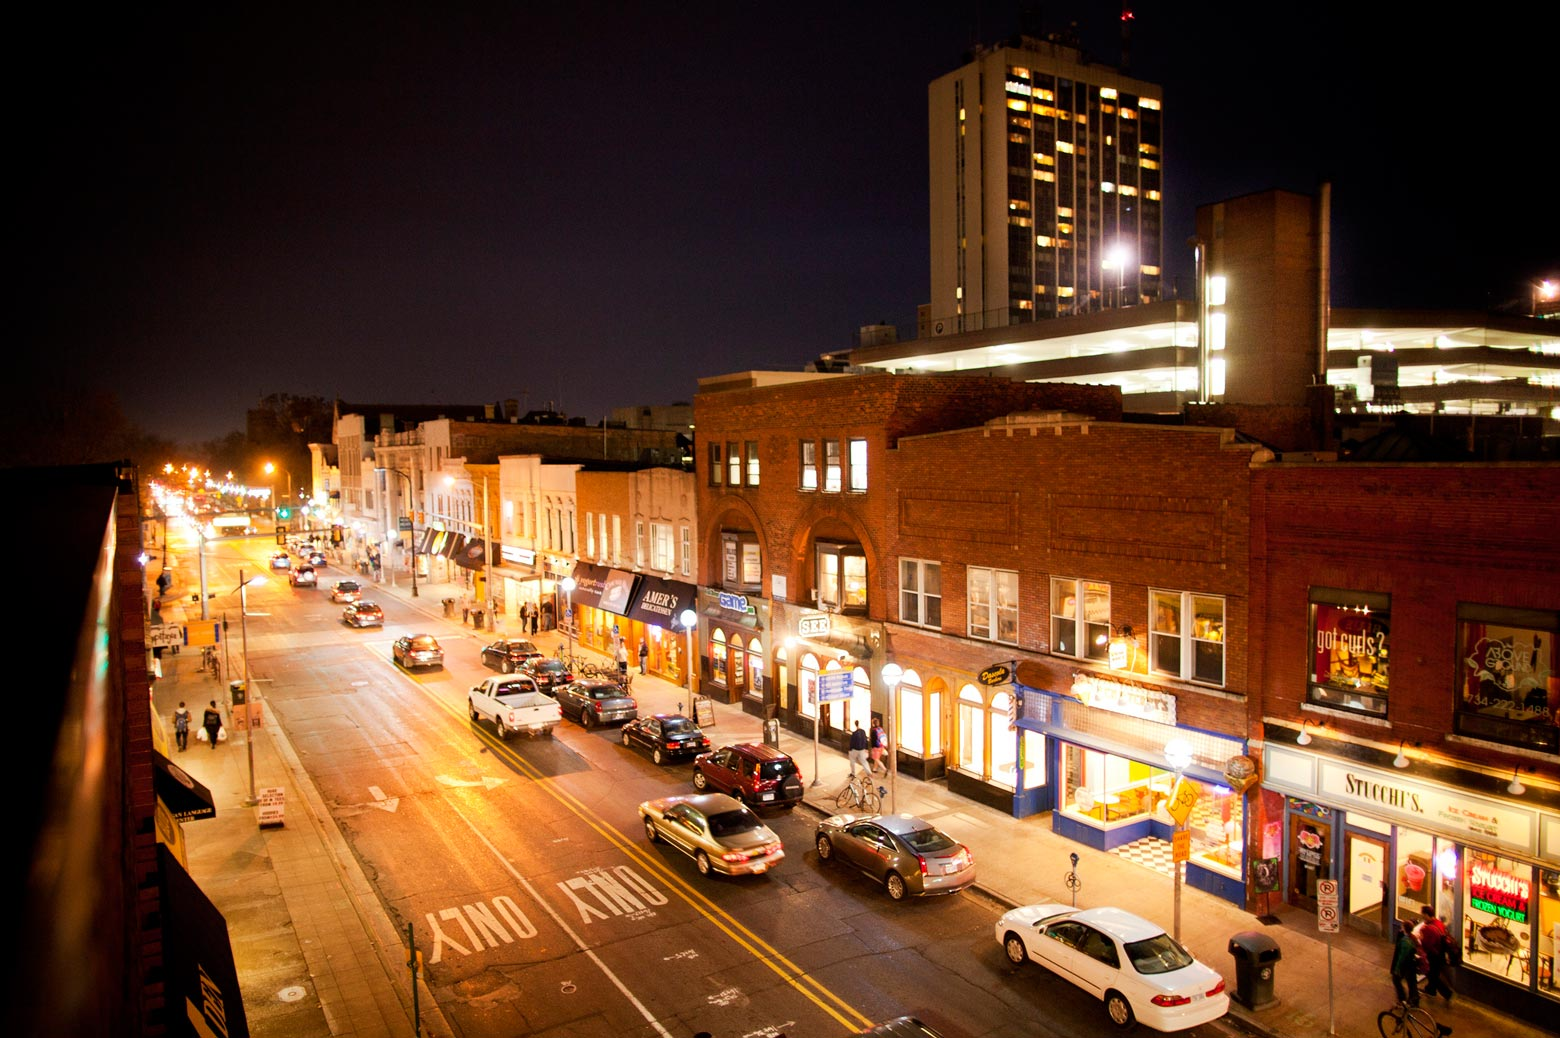 Street view of U-M central campus at night